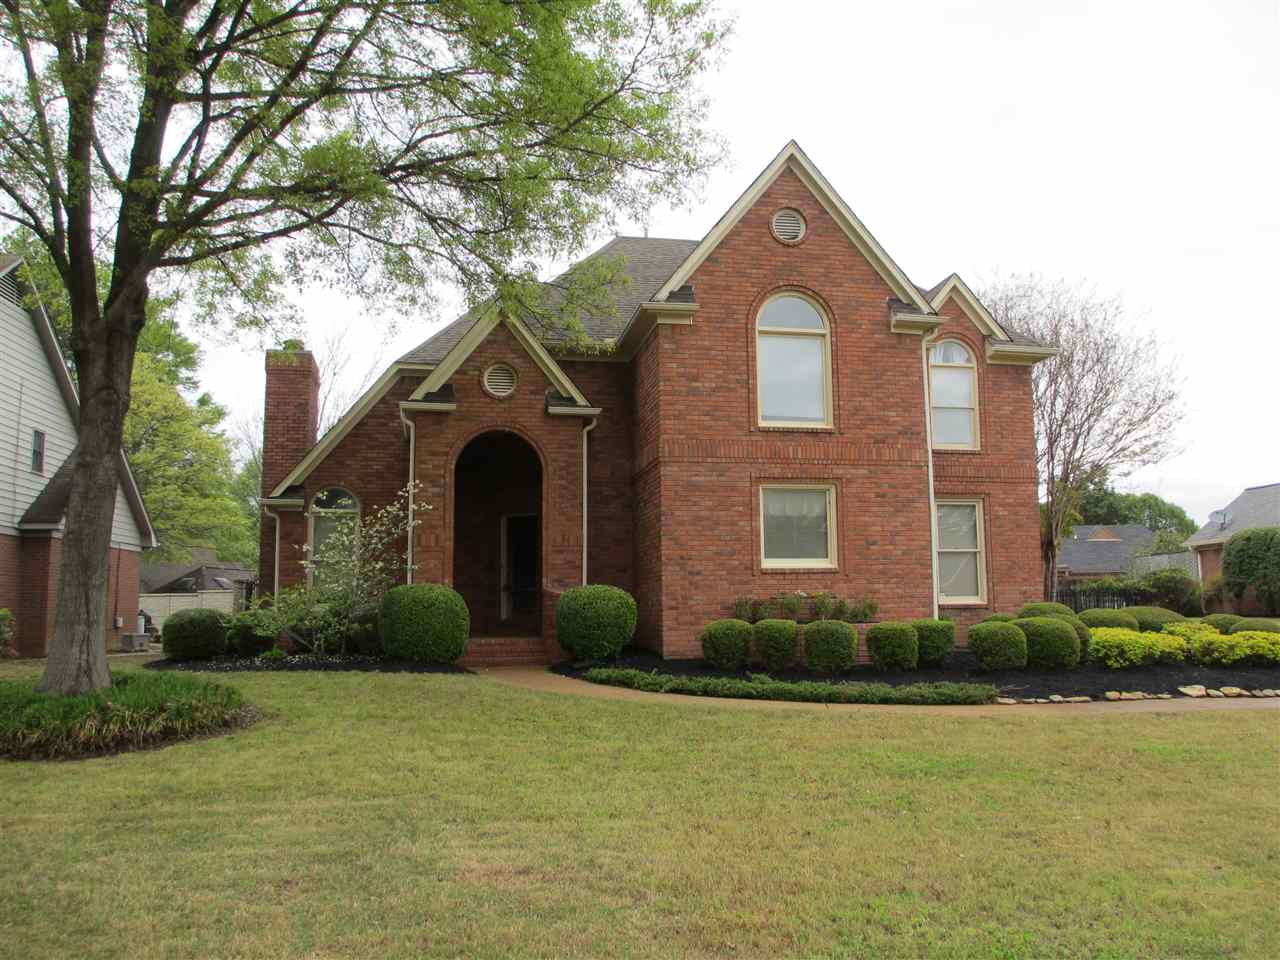 9466 Misty Grove Cv, Cordova, TN